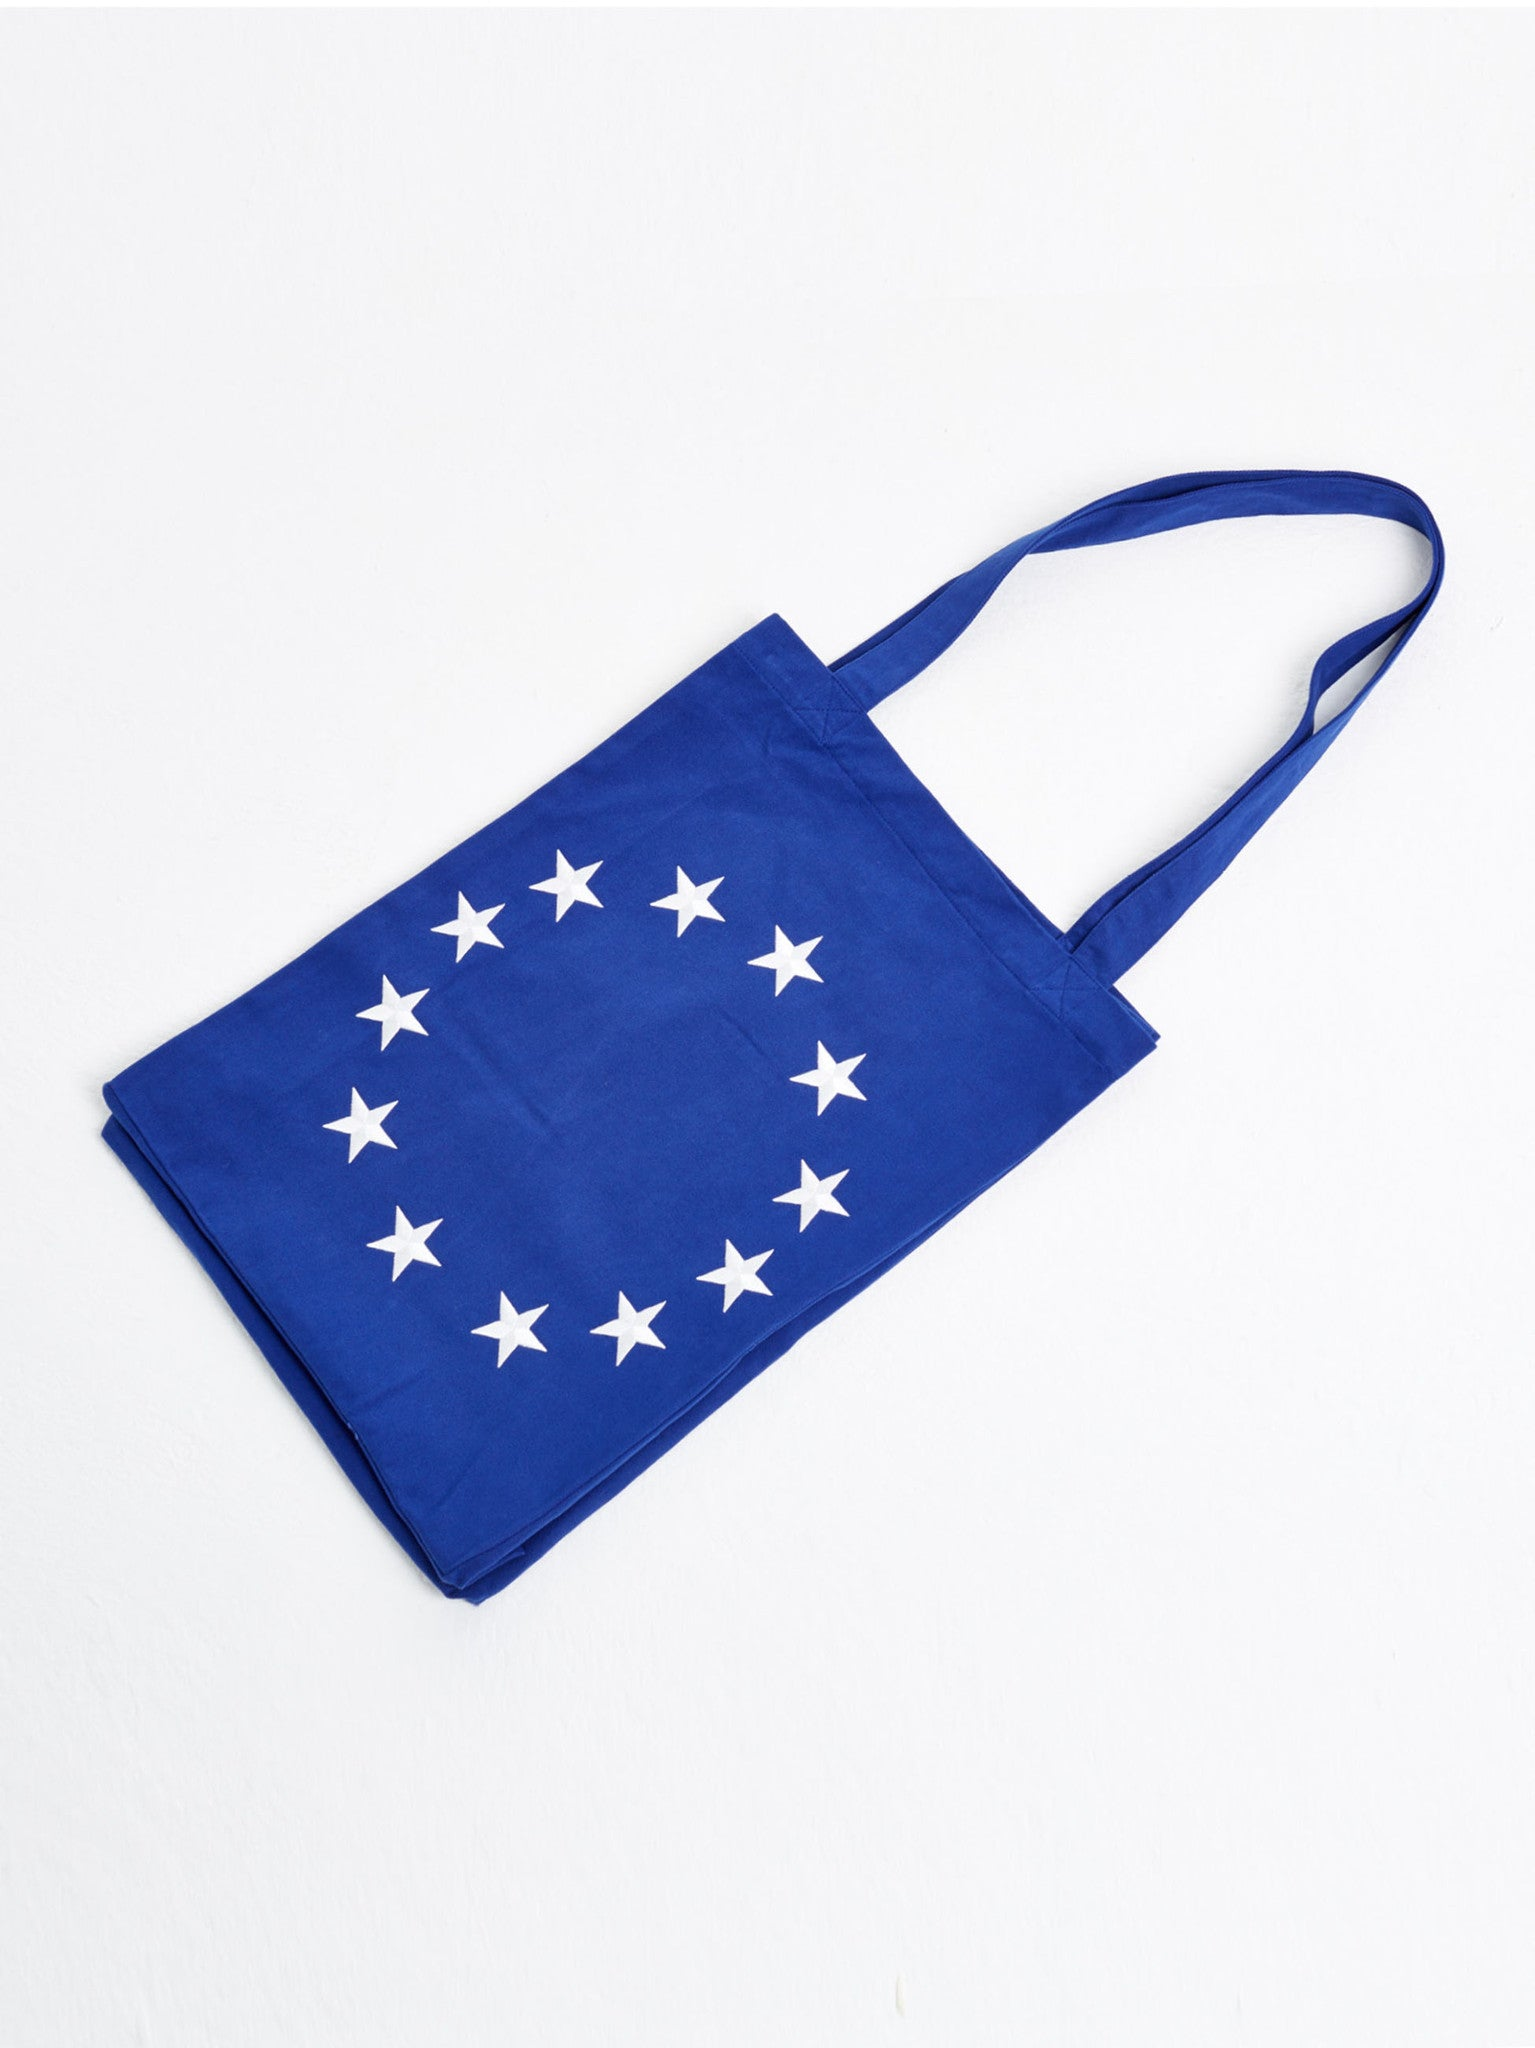 Études Studio - October Europa Études Blue Tote